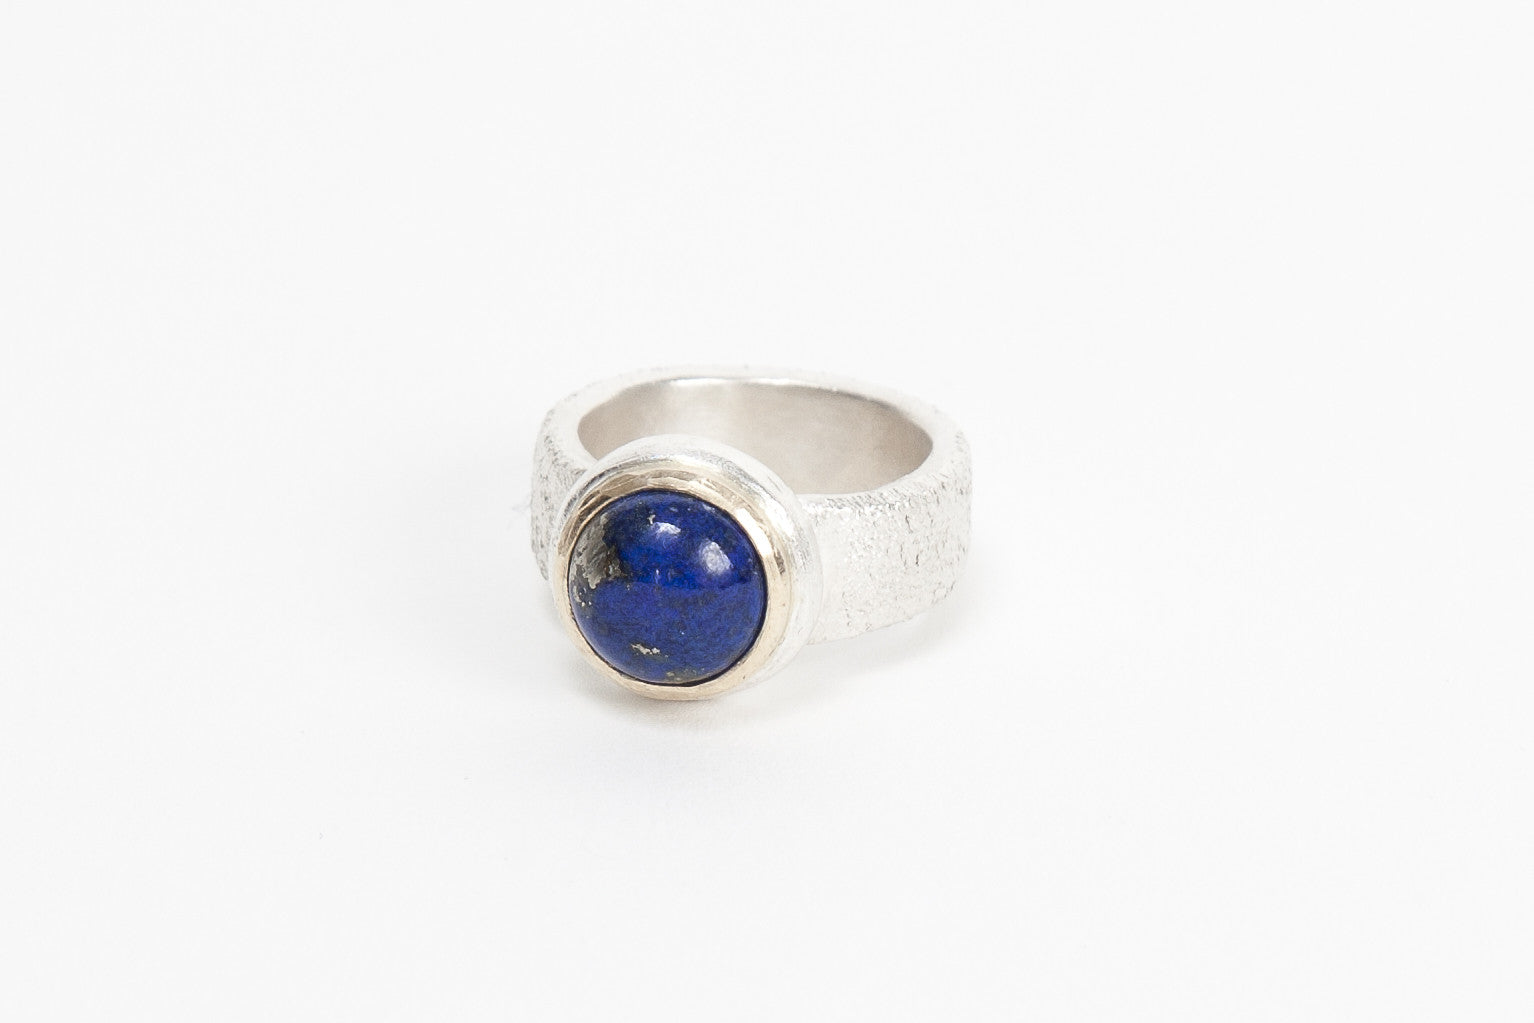 Gold Top Cocktail Ring - Lapis Lazuli